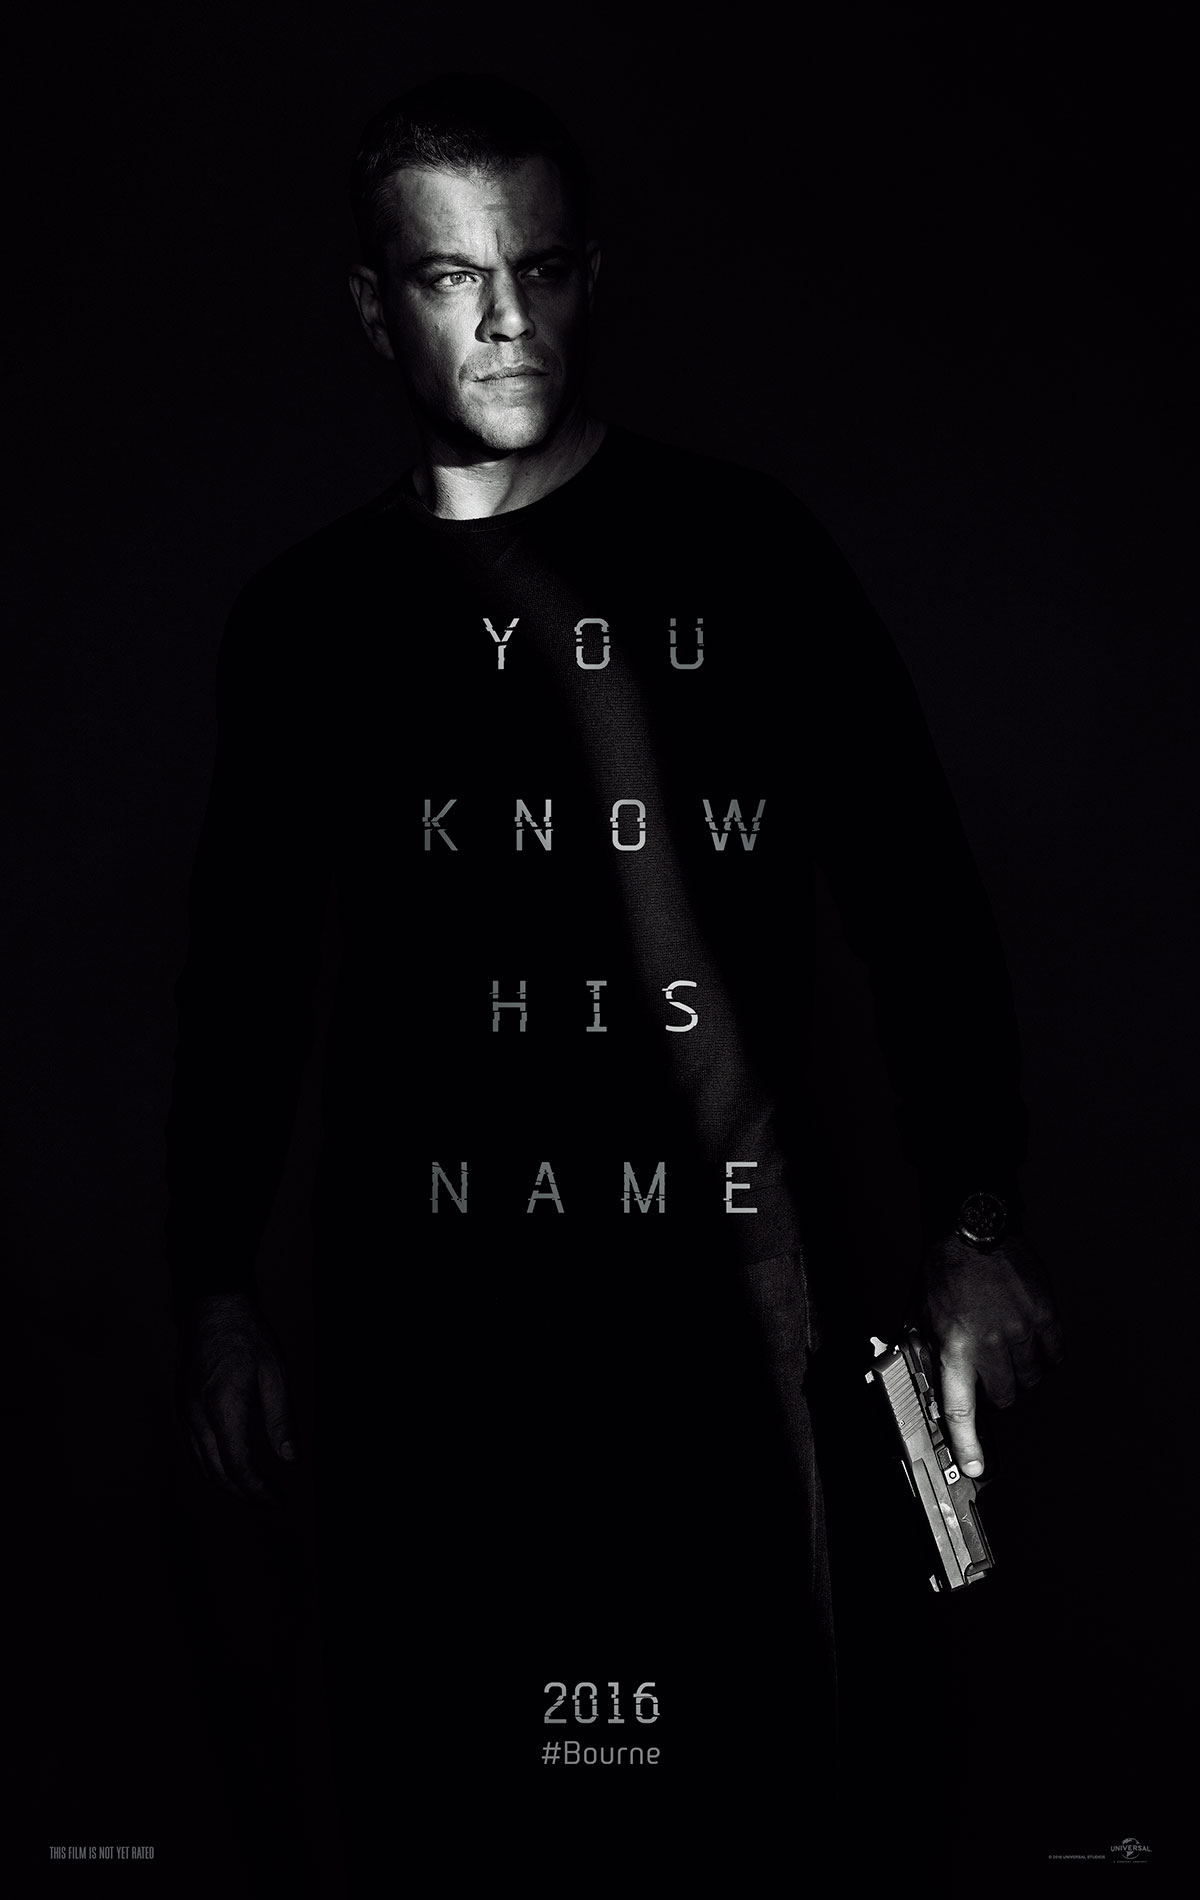 jason-bourne-movie-poster-images